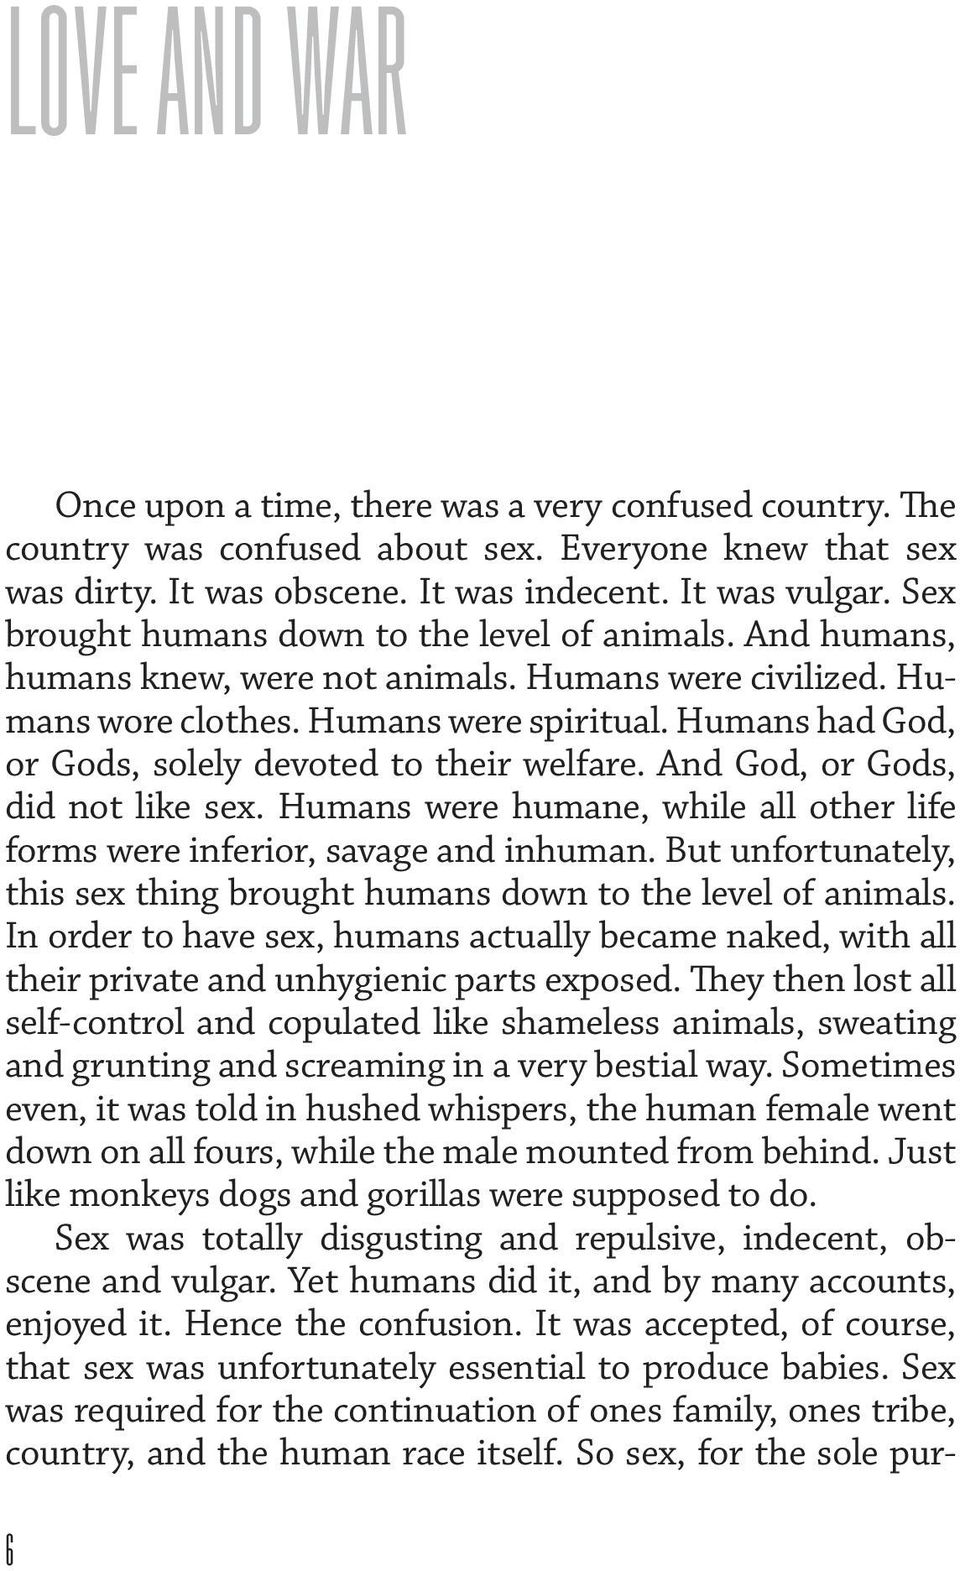 Humans had God, or Gods, solely devoted to their welfare. And God, or Gods, did not like sex. Humans were humane, while all other life forms were inferior, savage and inhuman.